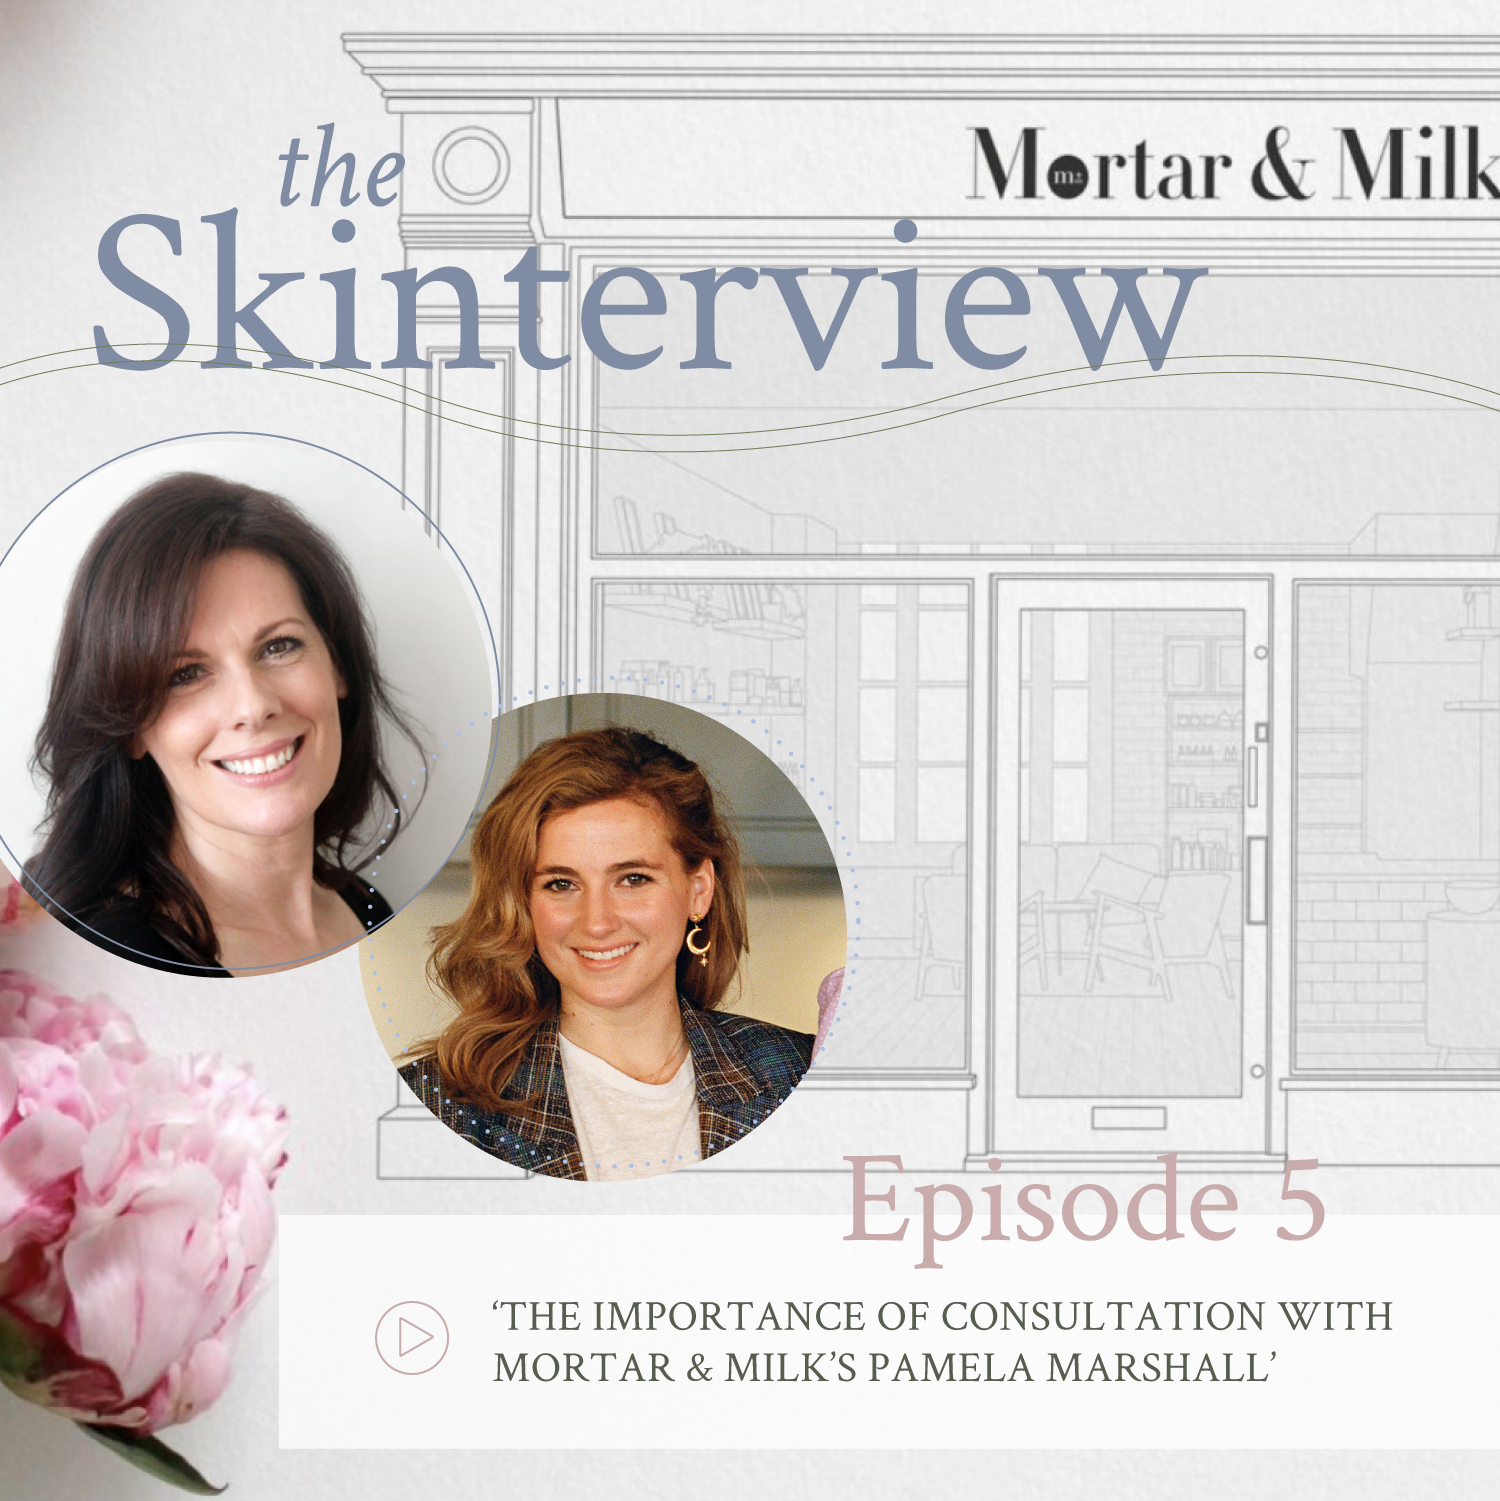 This podcast will encourage you to seek expert skin help